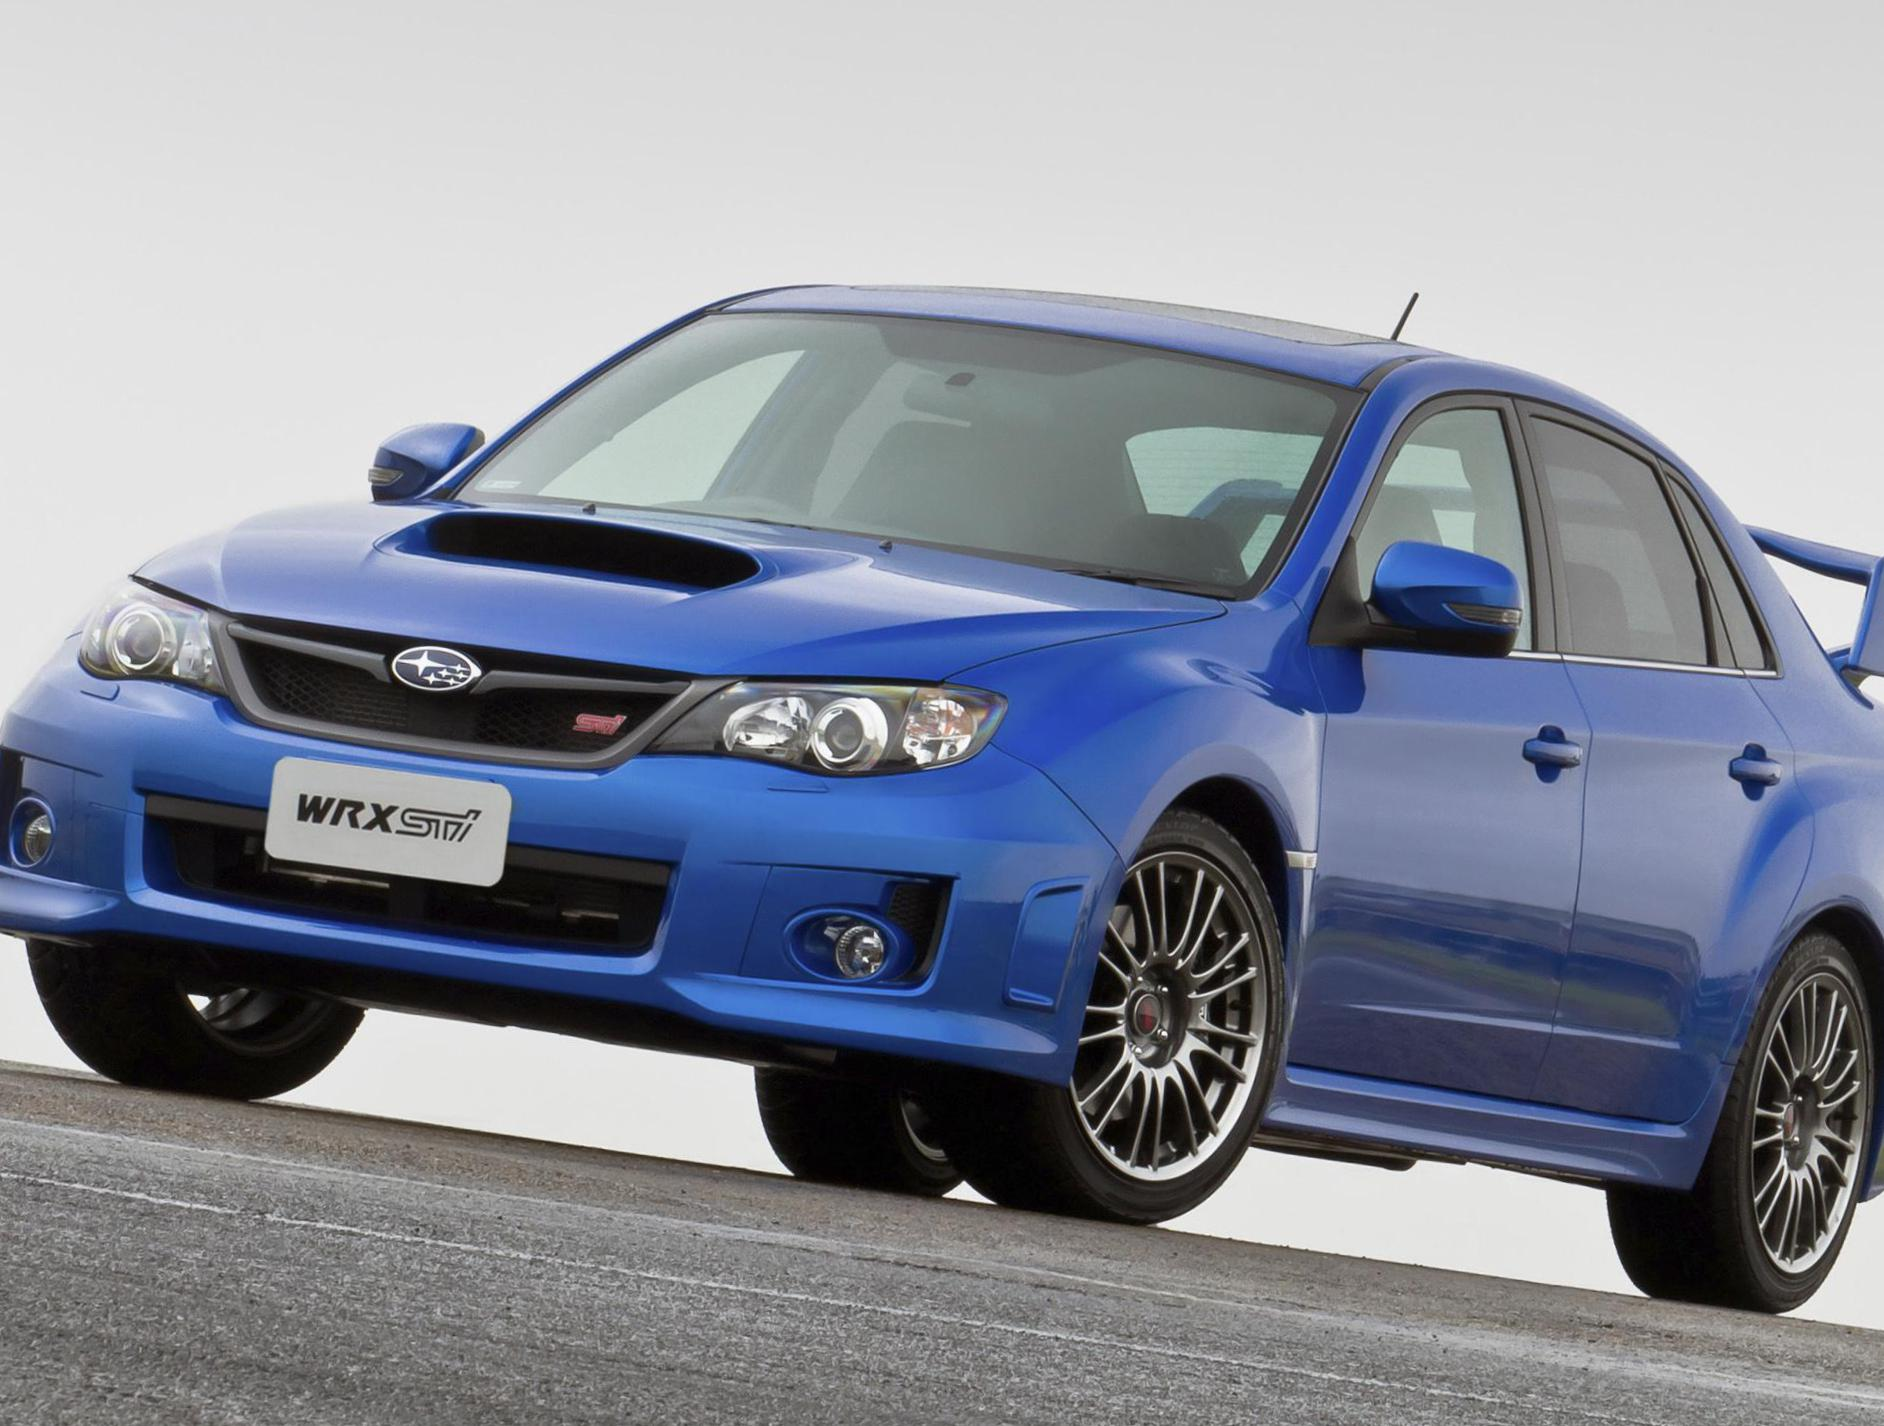 Subaru Impreza WRX approved 2011